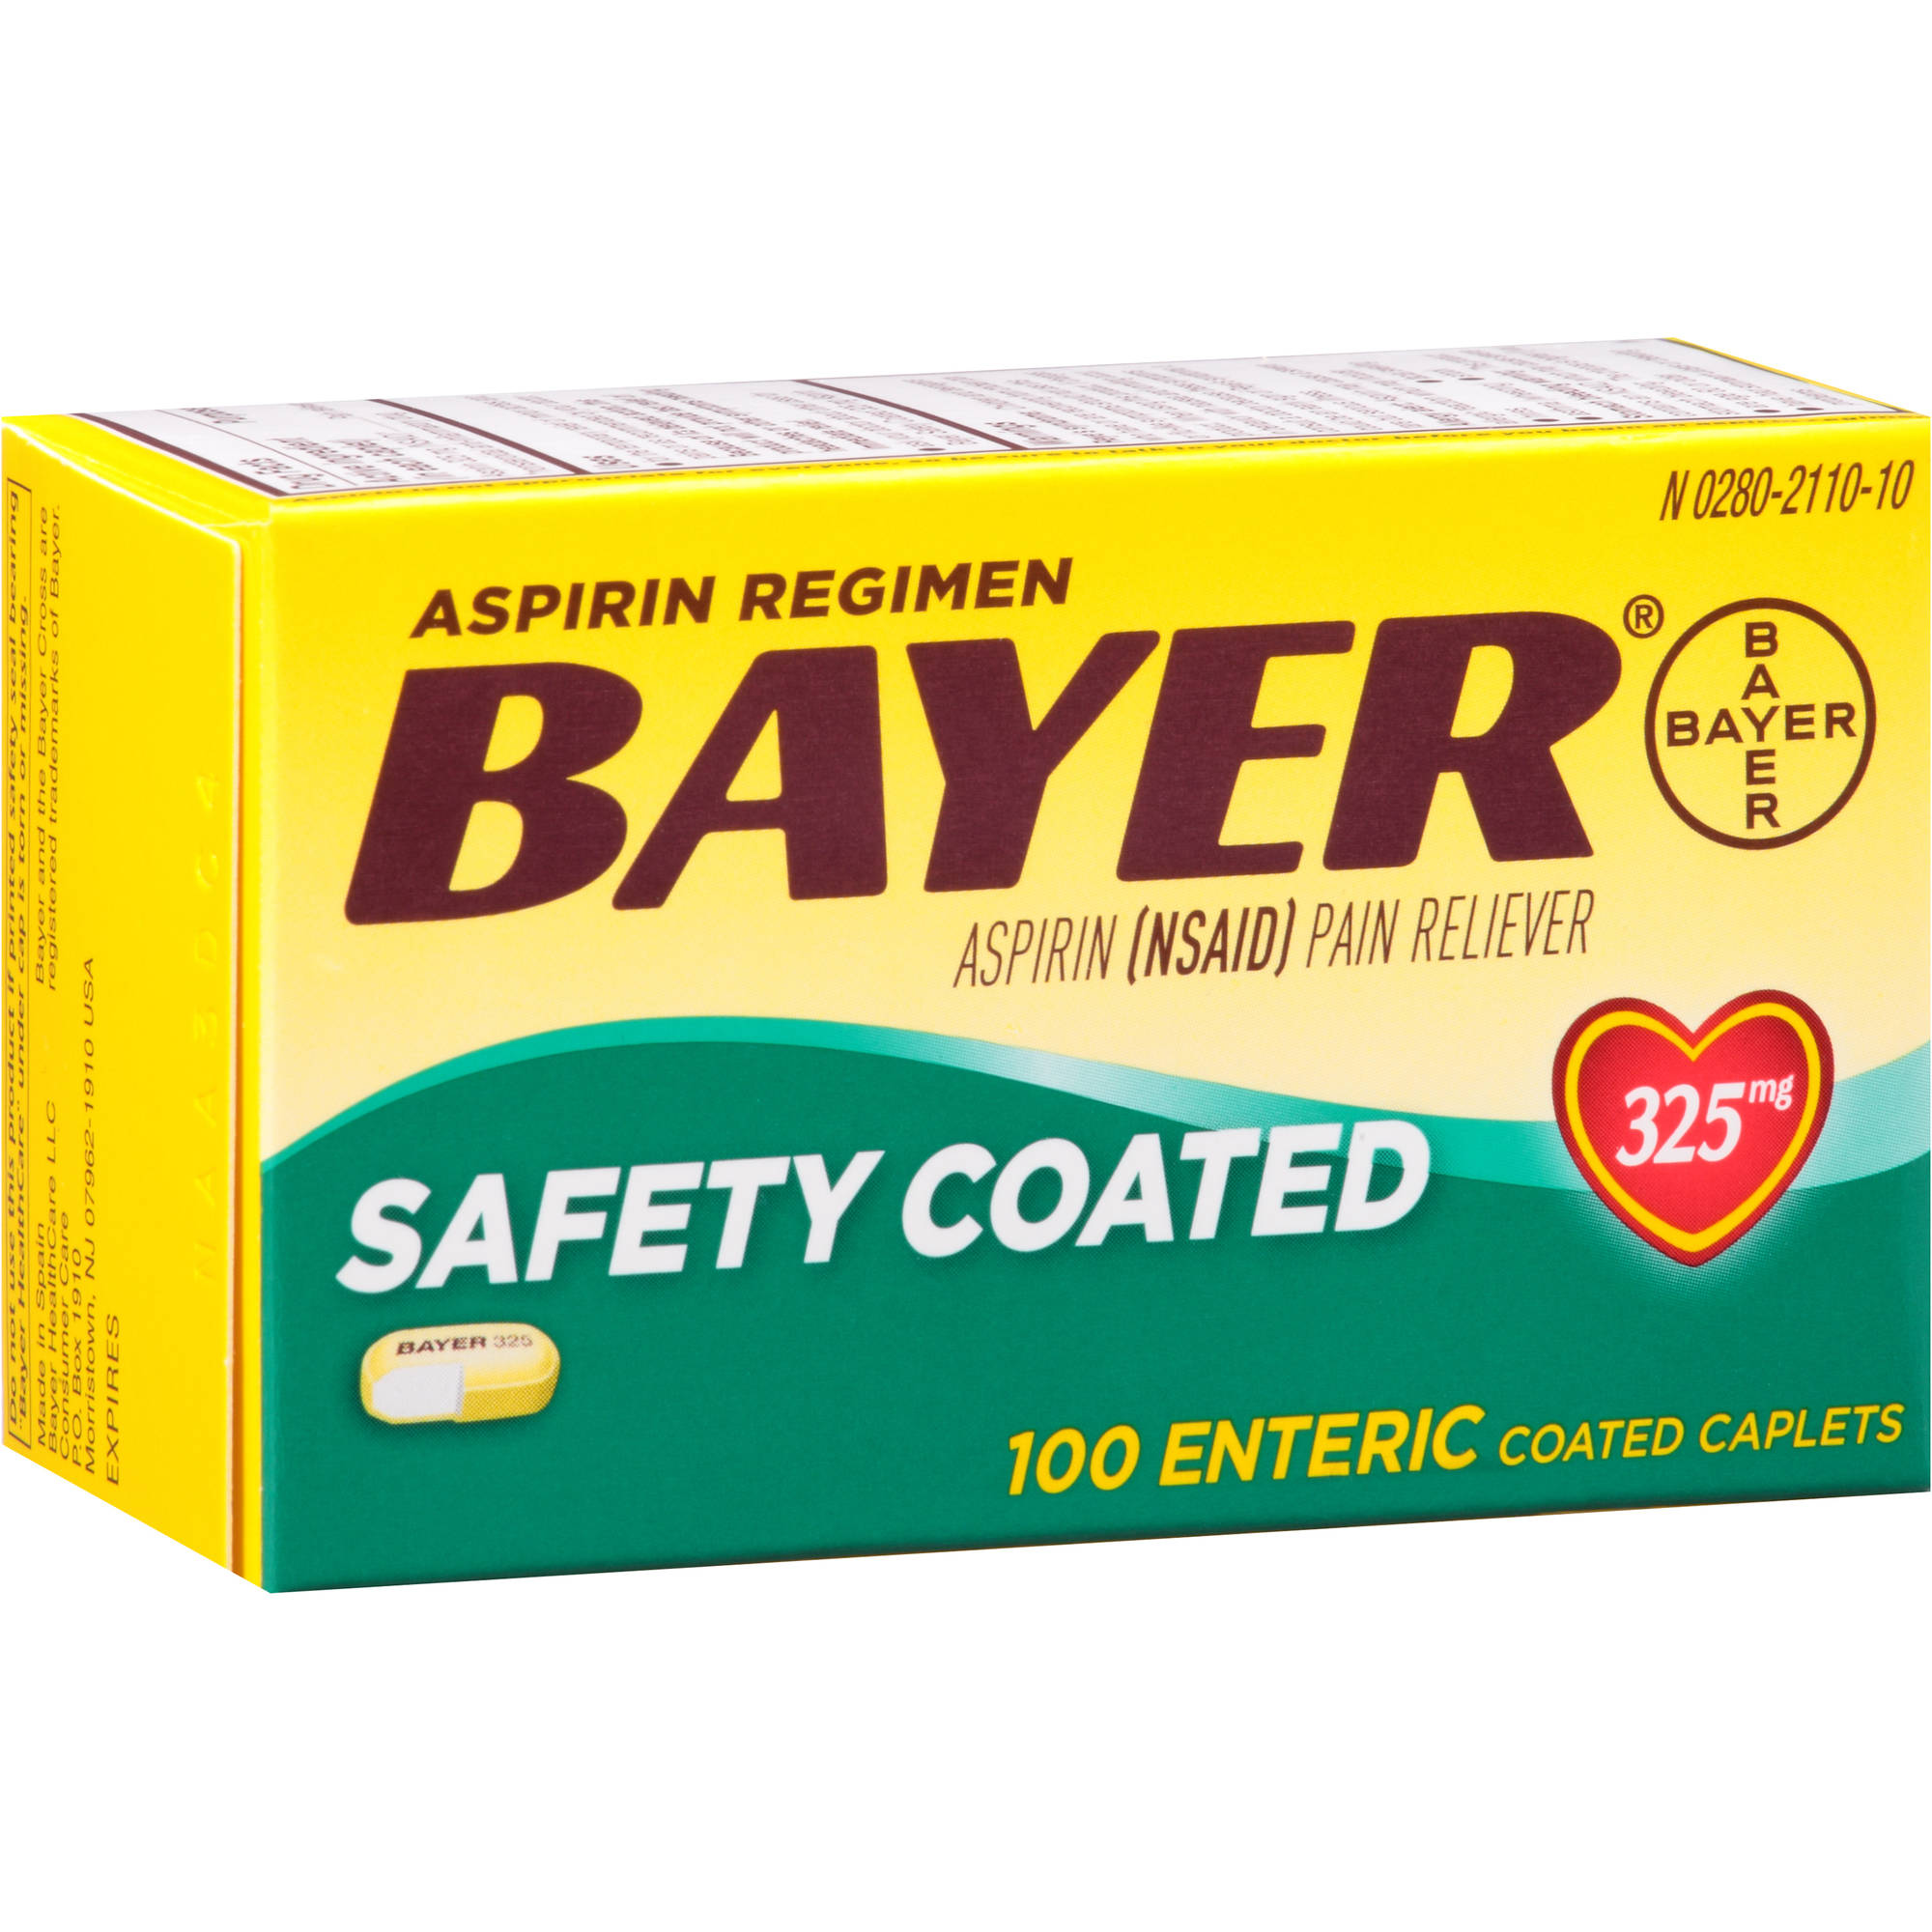 Bayer Aspirin Pain Reliever Enteric Coated Caplets, 325mg, 100 count